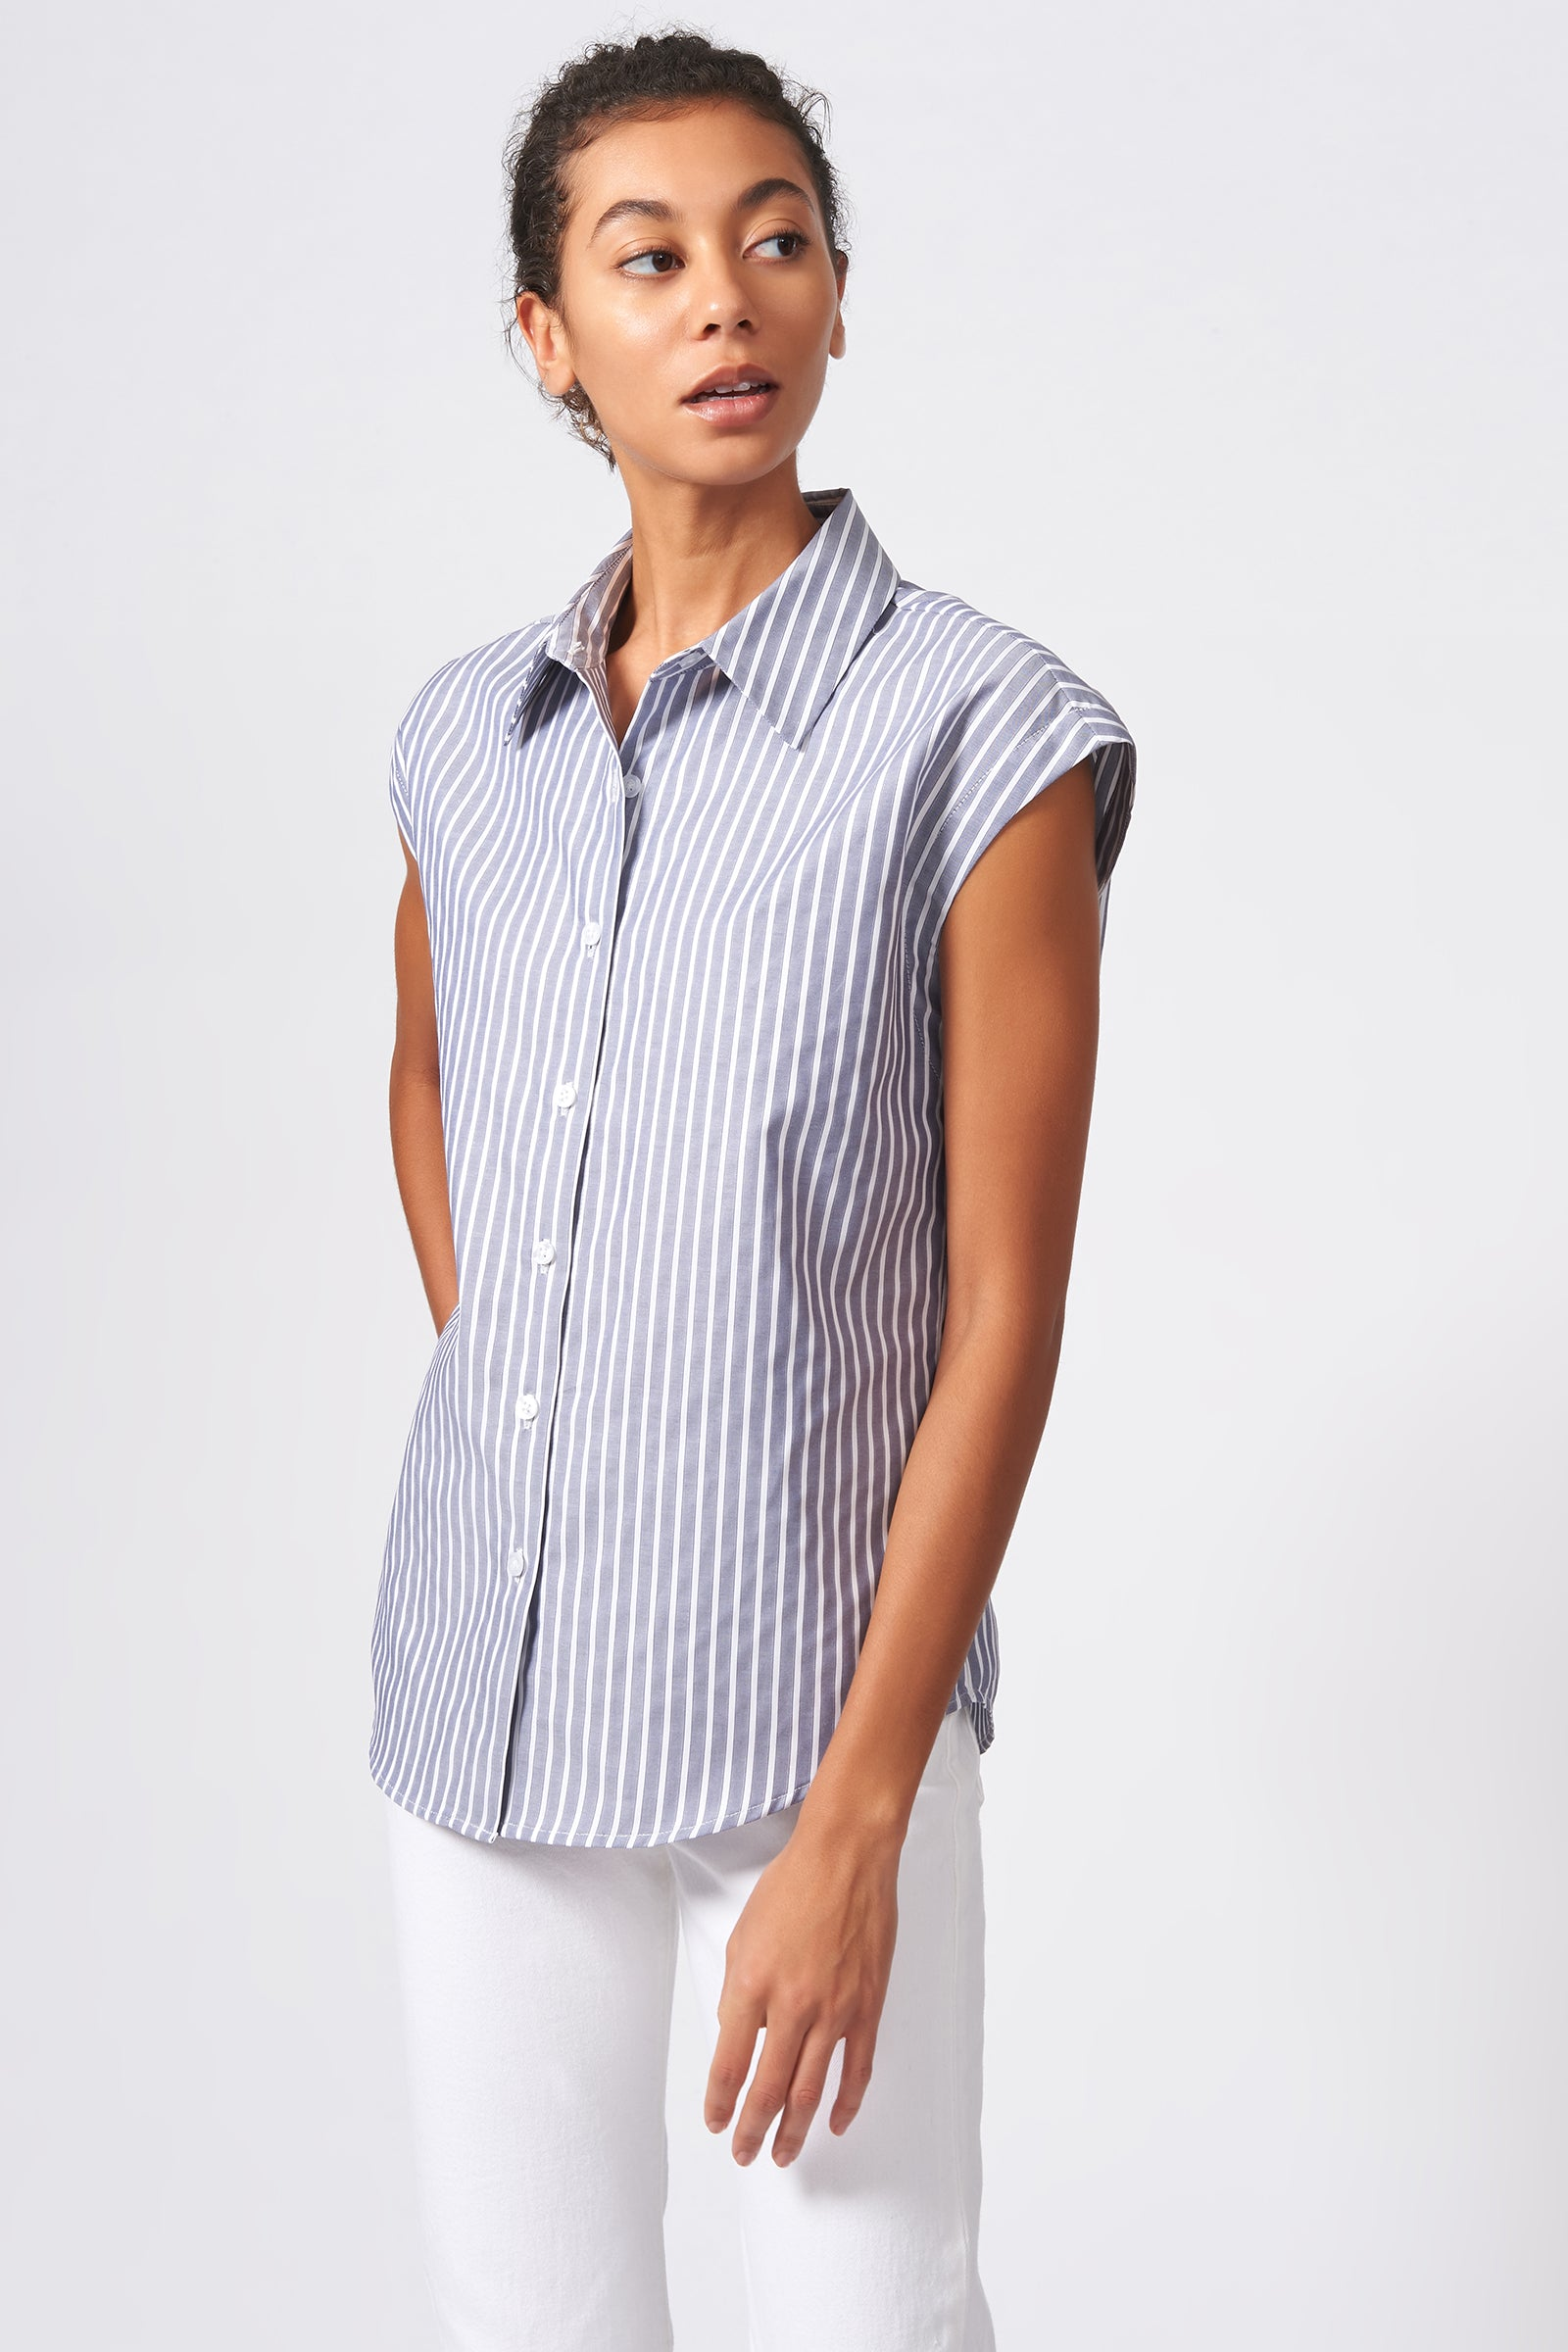 Kal Rieman Collared Cap Sleeve Shirt in Oxford Stripe on Model Front Side View